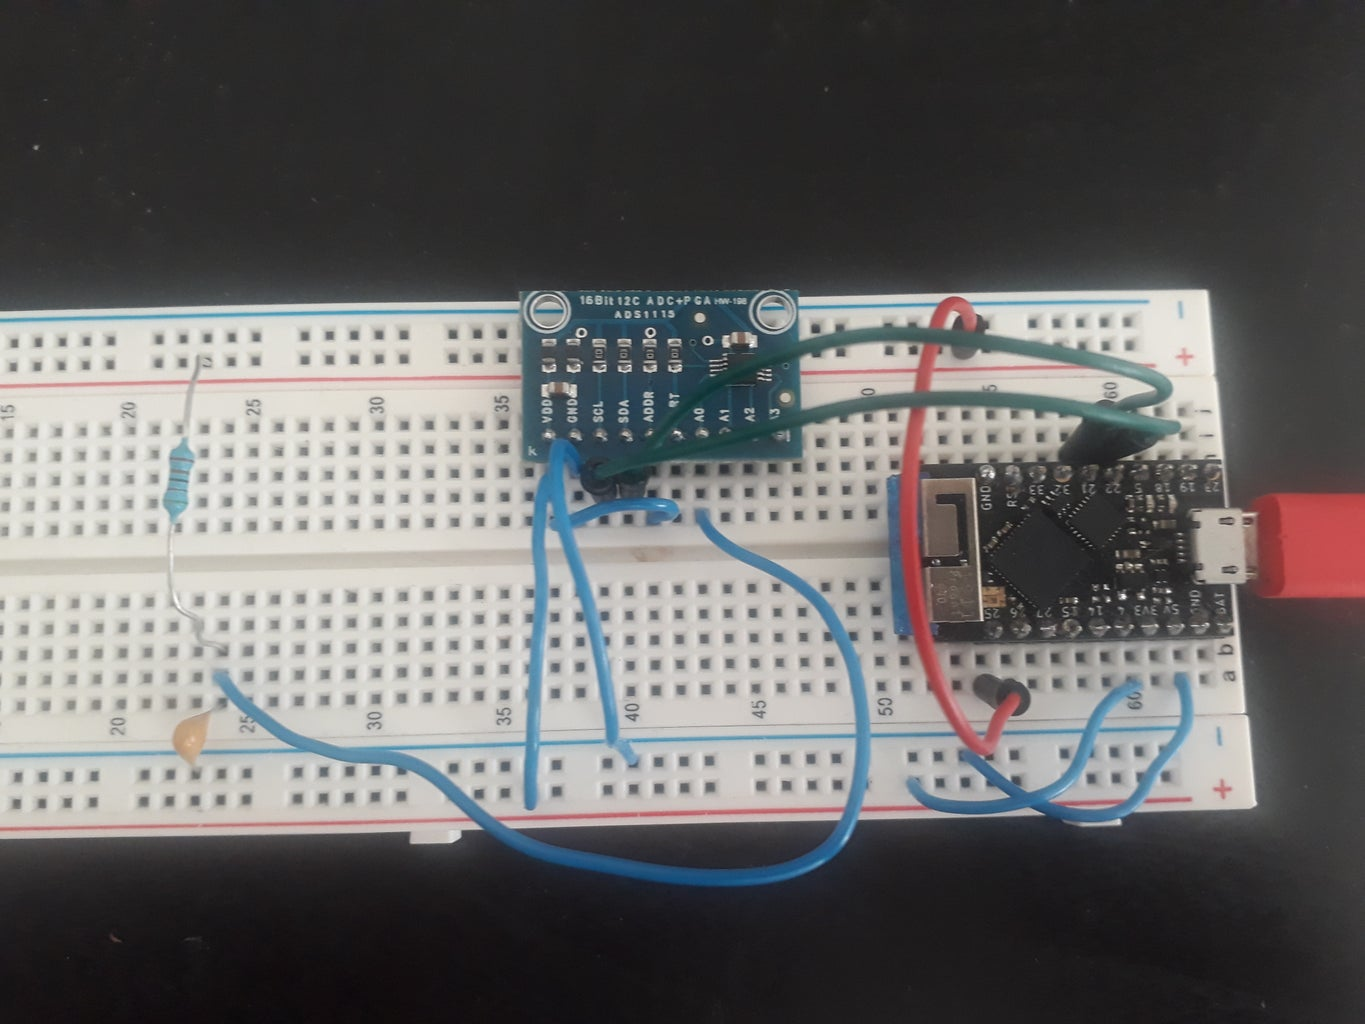 Laying Out the Breadboard